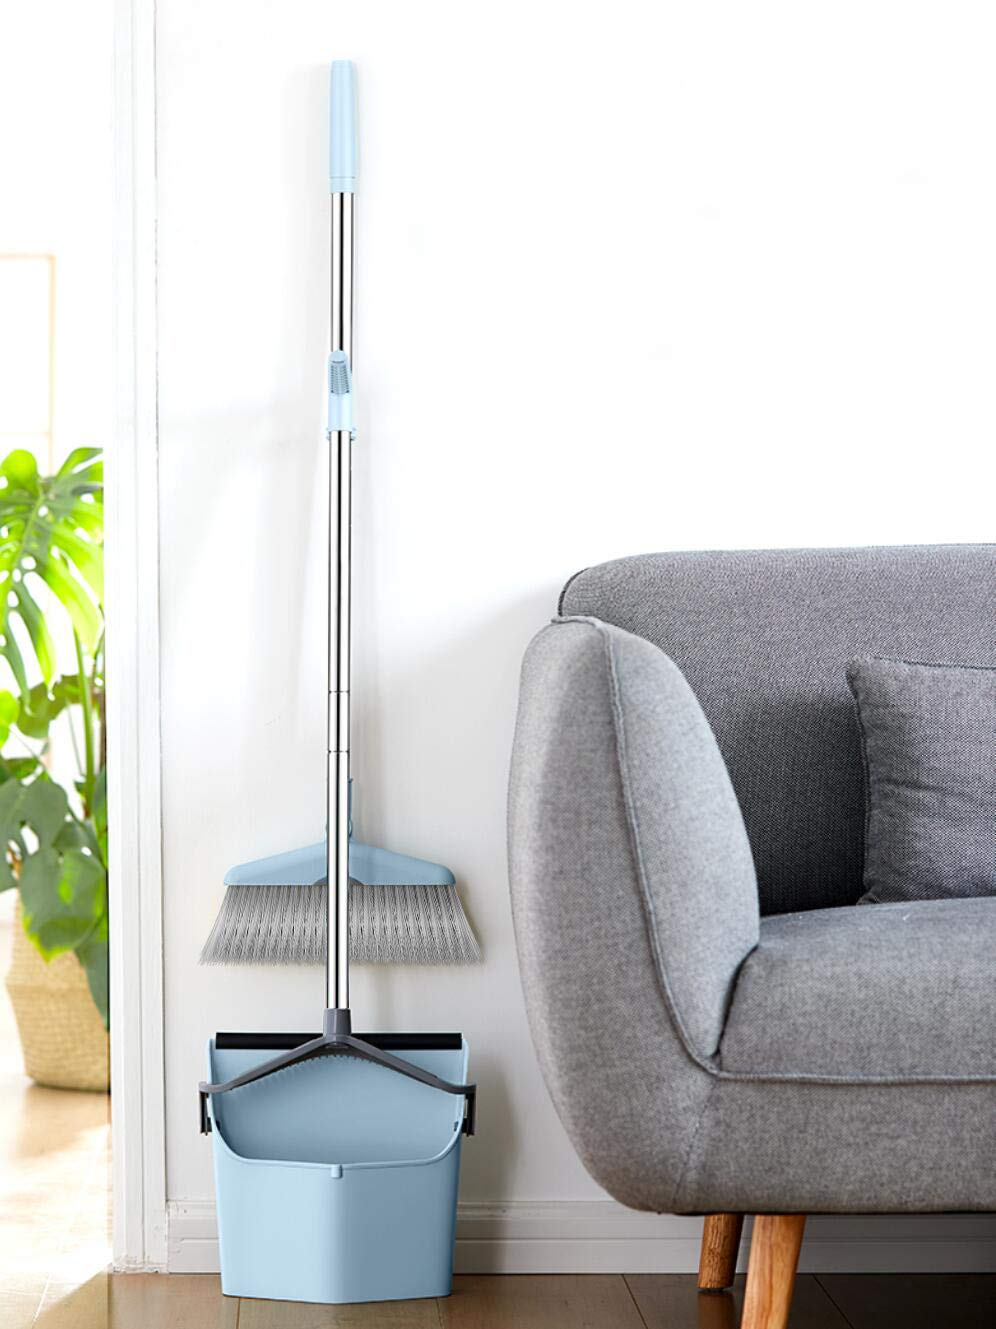 Dust Pan Sweep Set and Broom/Dustpan Cleans Broom Combo with Long Handle Broom Organizer for Home Kitchen Room Office Lobby Floor Use Upright Stand up Dustpan Broom Set by YOUSHANGJIA (Image #8)